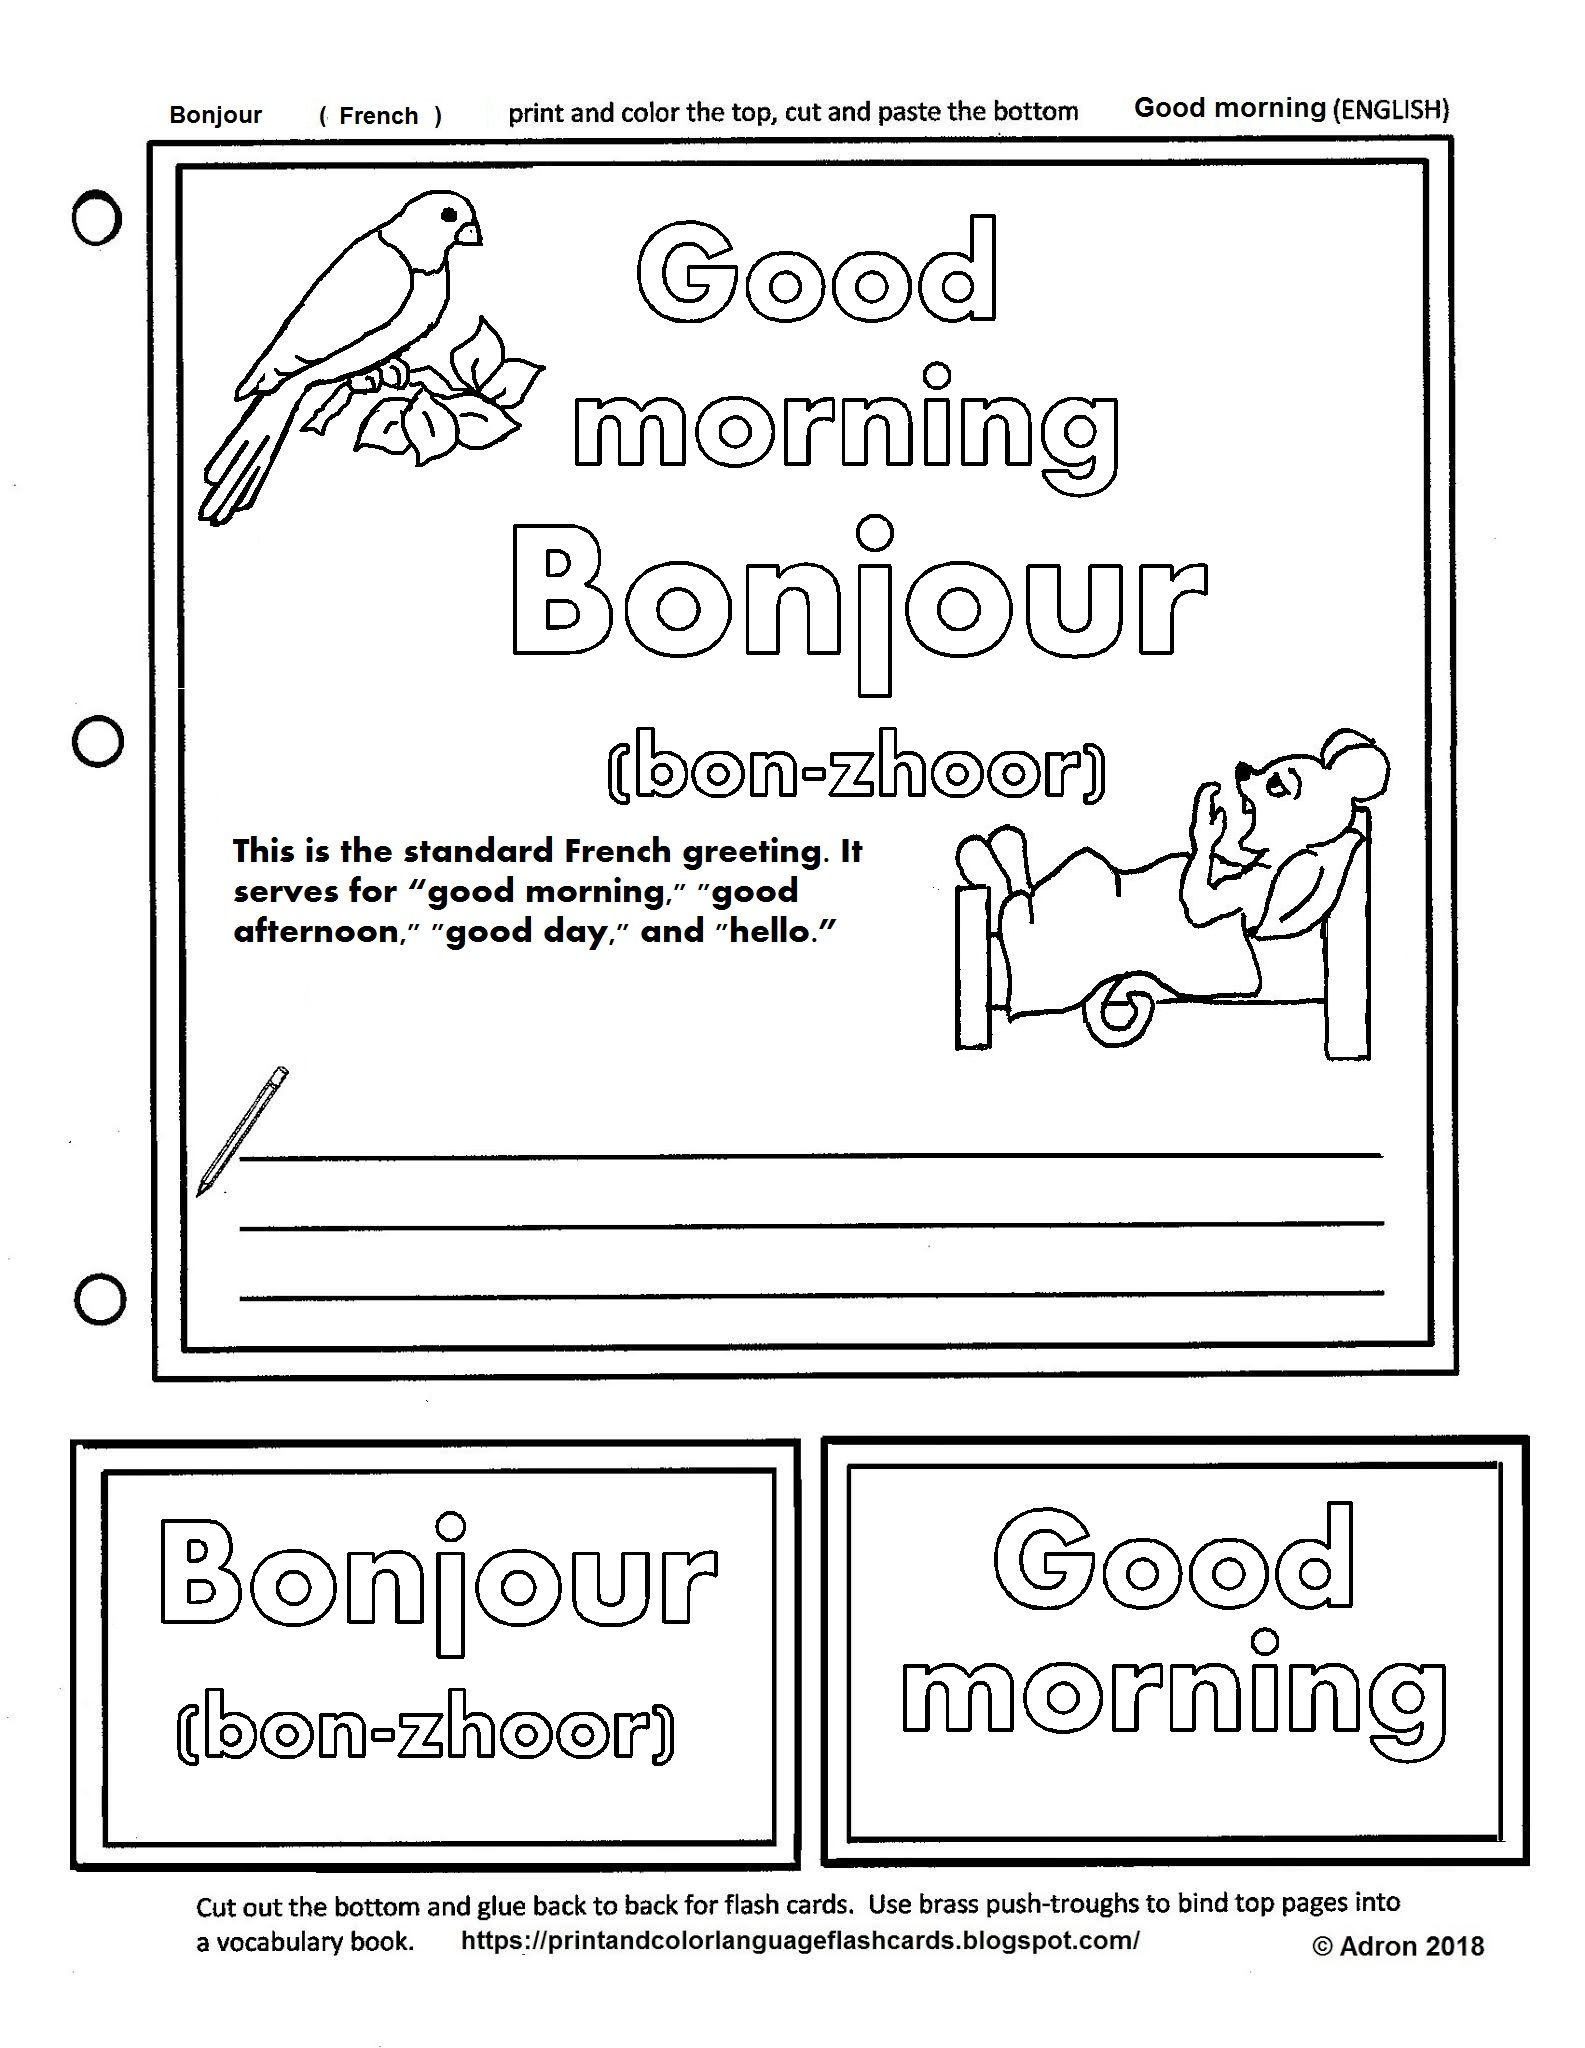 Print And Color Language Flash Card For The French Word Bonjour